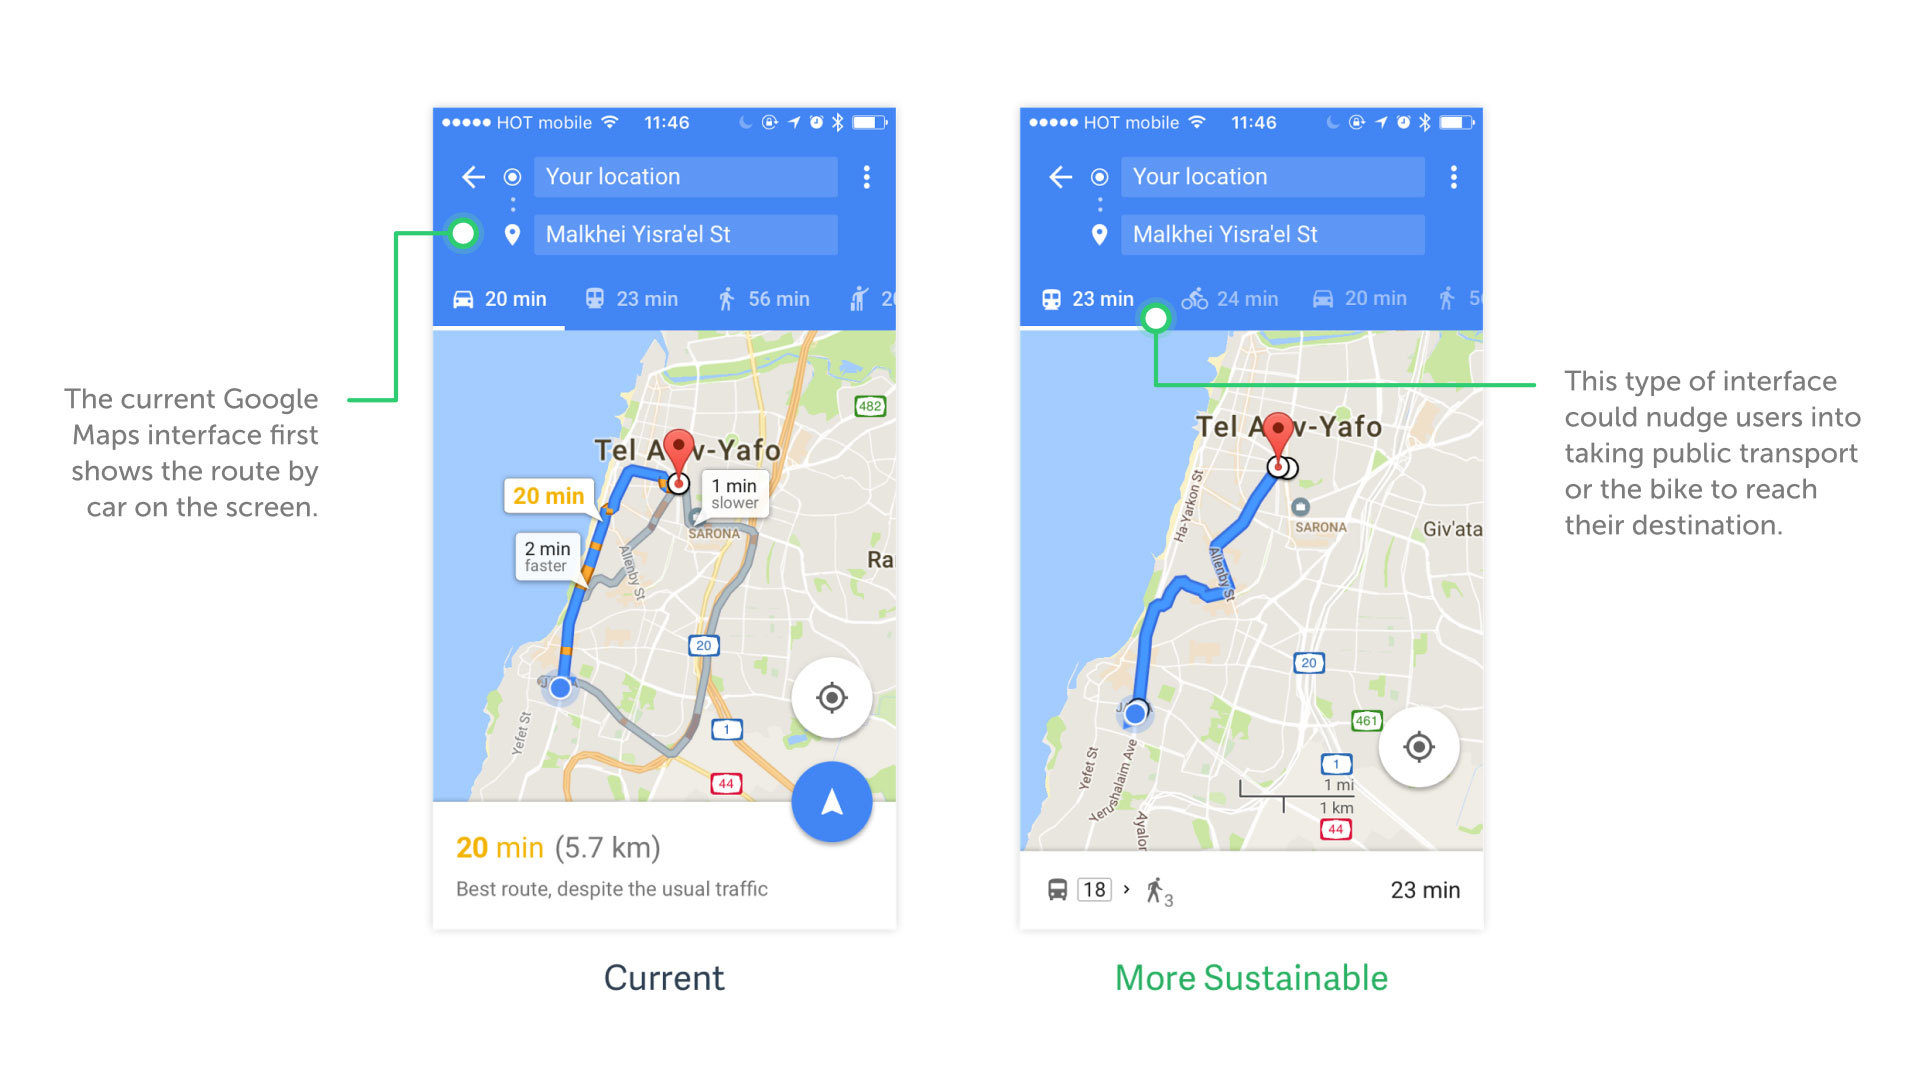 Artiom Dashinsky's redesign for Google Maps